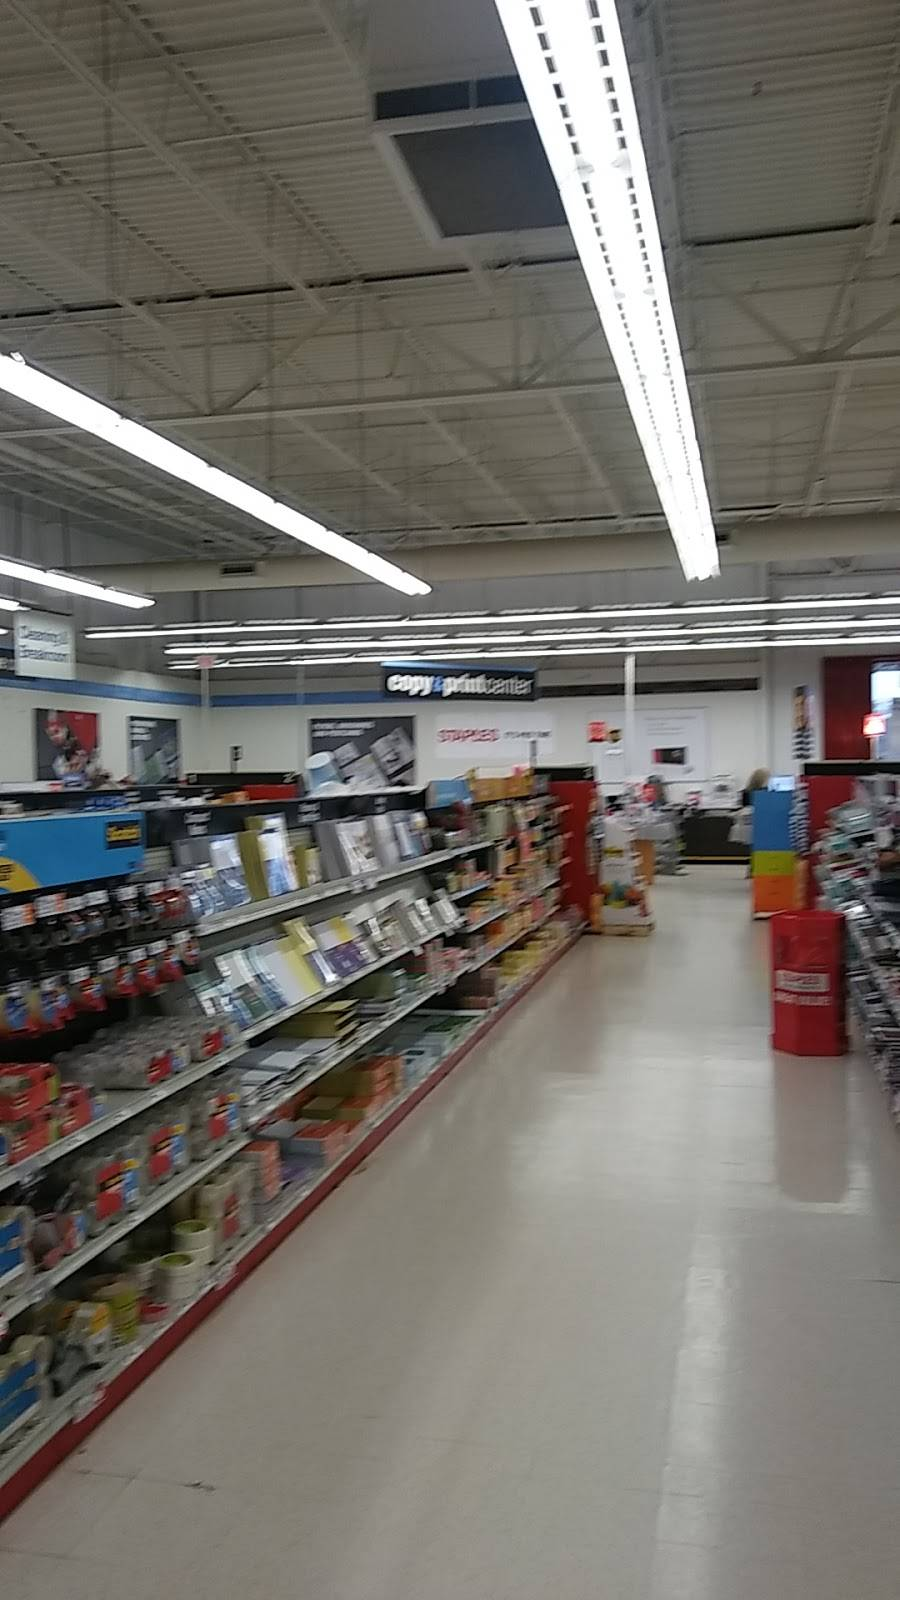 Staples - electronics store  | Photo 8 of 10 | Address: 210 Harmon Creek Rd, Kernersville, NC 27284, USA | Phone: (336) 993-7474